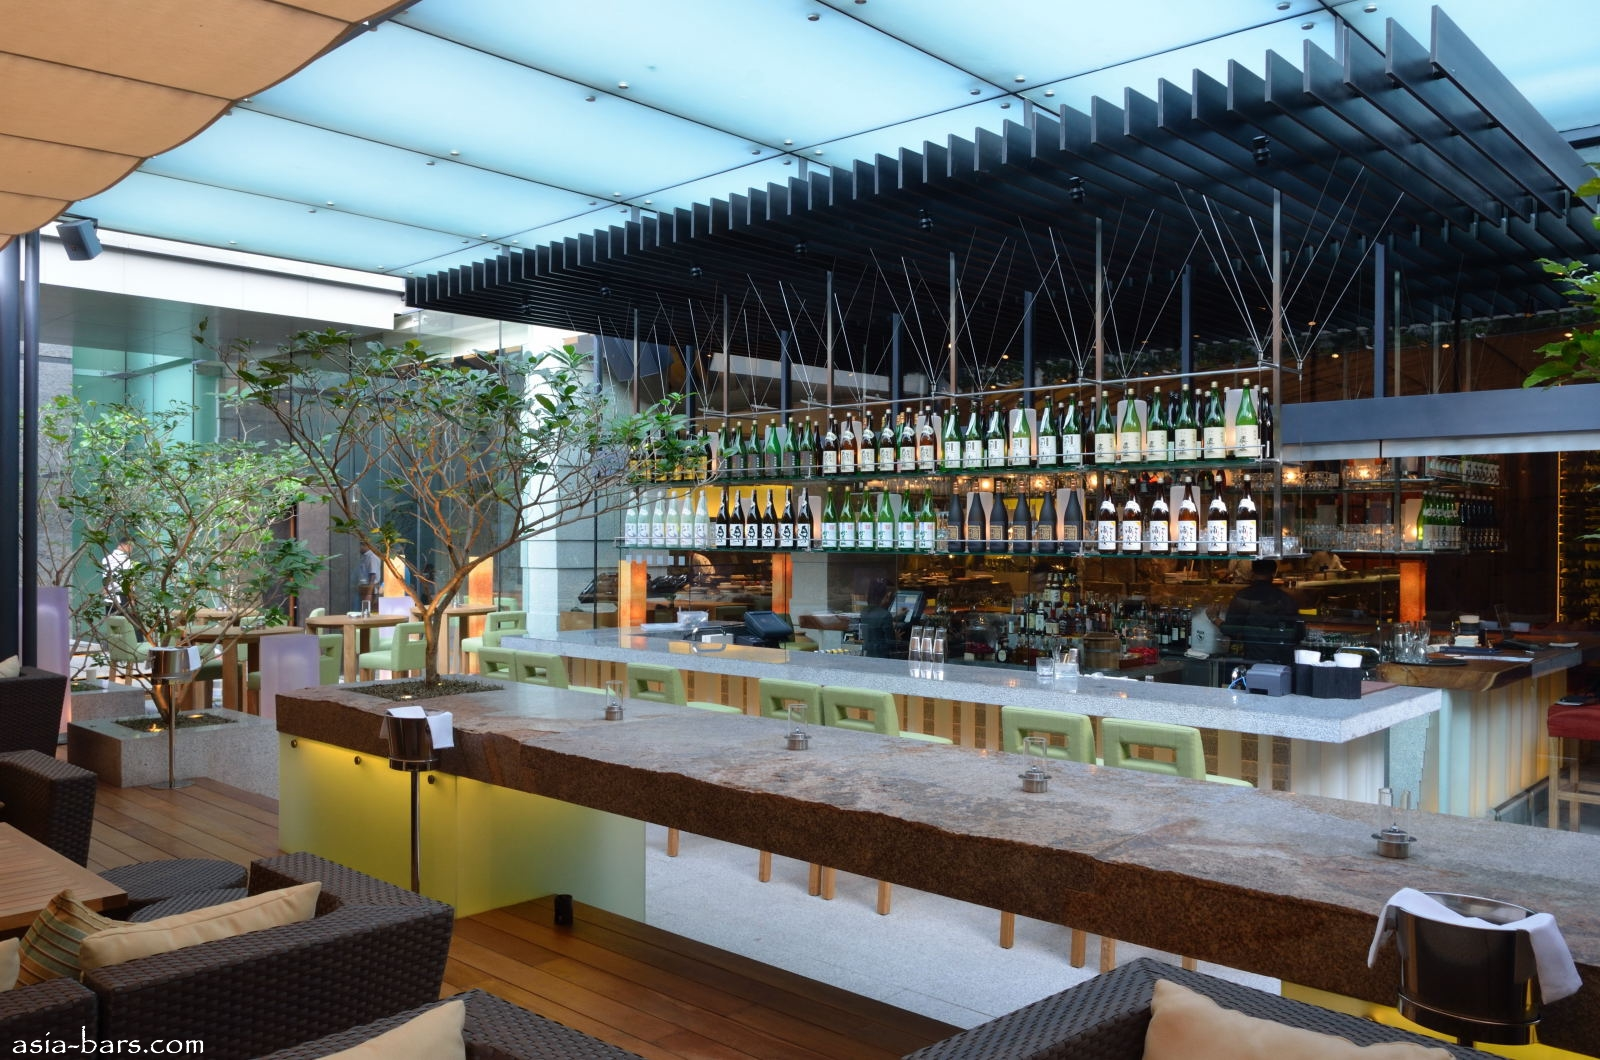 Zuma bangkok globally acclaimed restaurant group opens